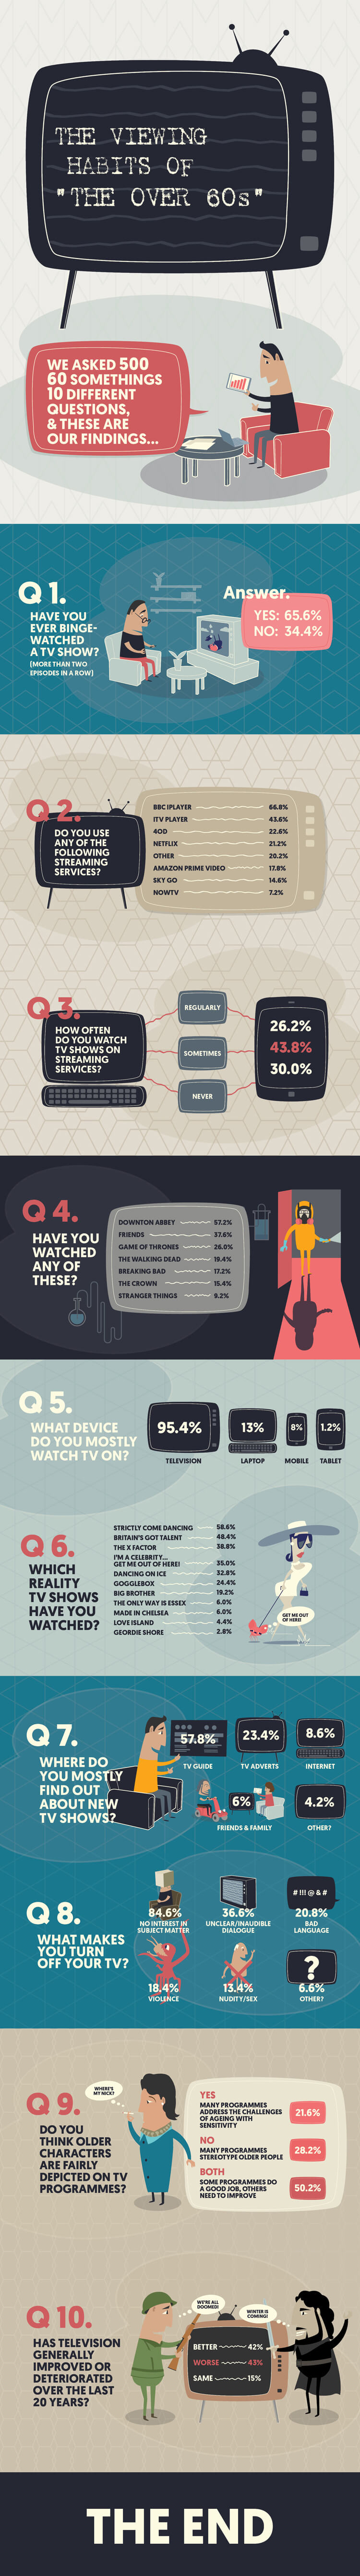 viewing-habits-of-the-over-60s-infographic-plaza